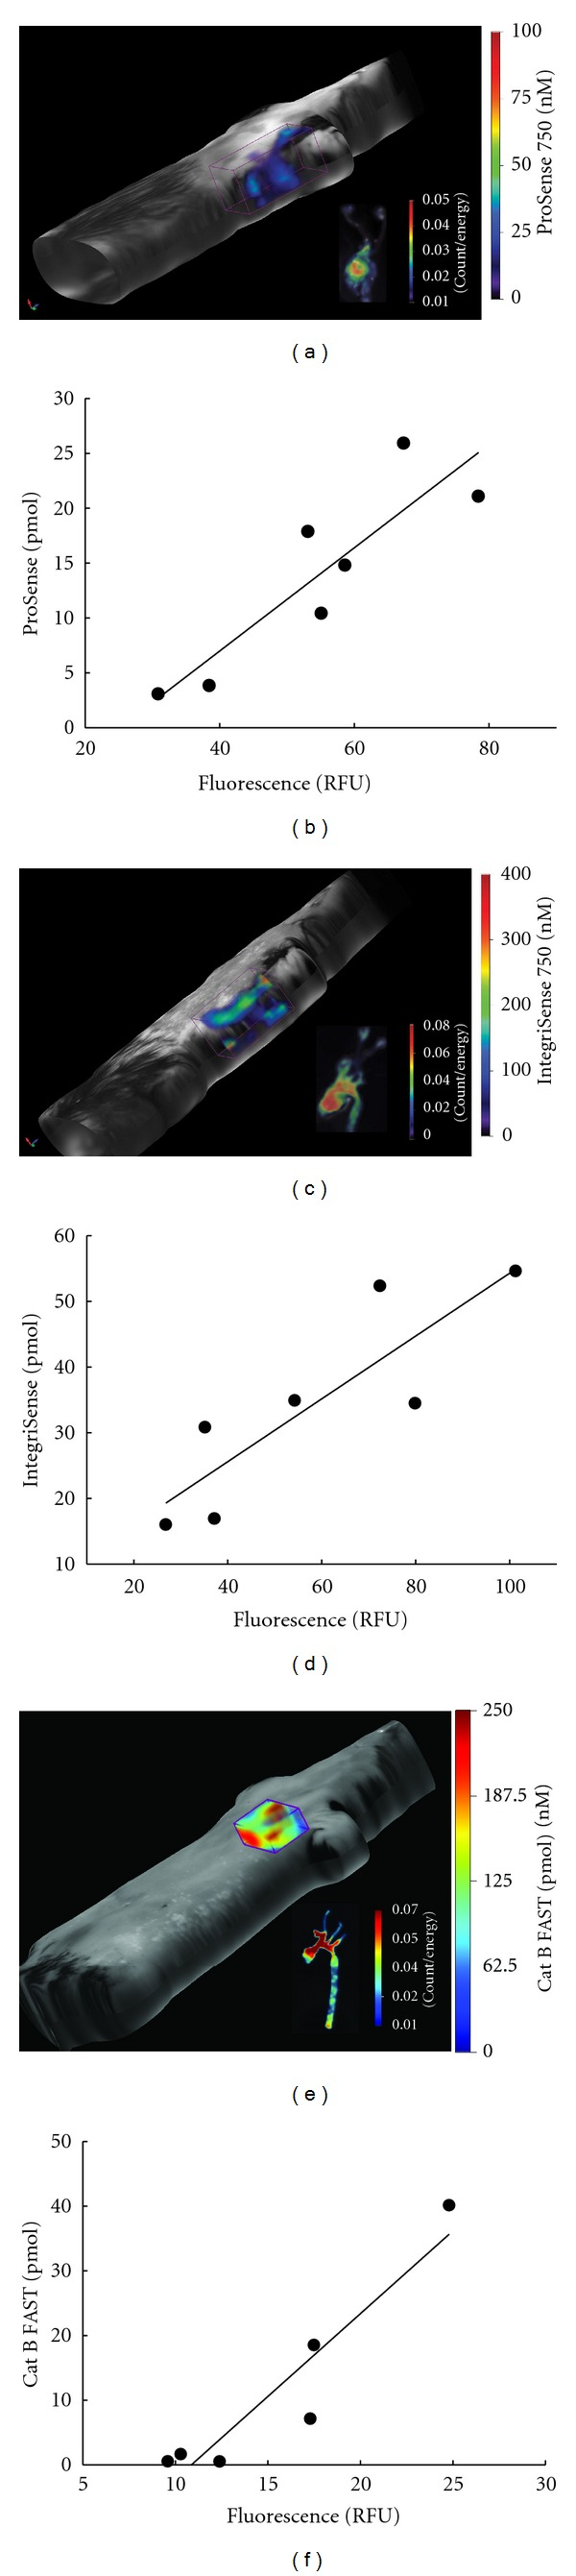 Examples of in vivo FMT images of apoE −/− mice and ex vivo fluorescence images of the corresponding areas of dissected arteries and correlation between the in vivo and ex vivo measurements. (a), (b) ProSense ( r = 0.89, P